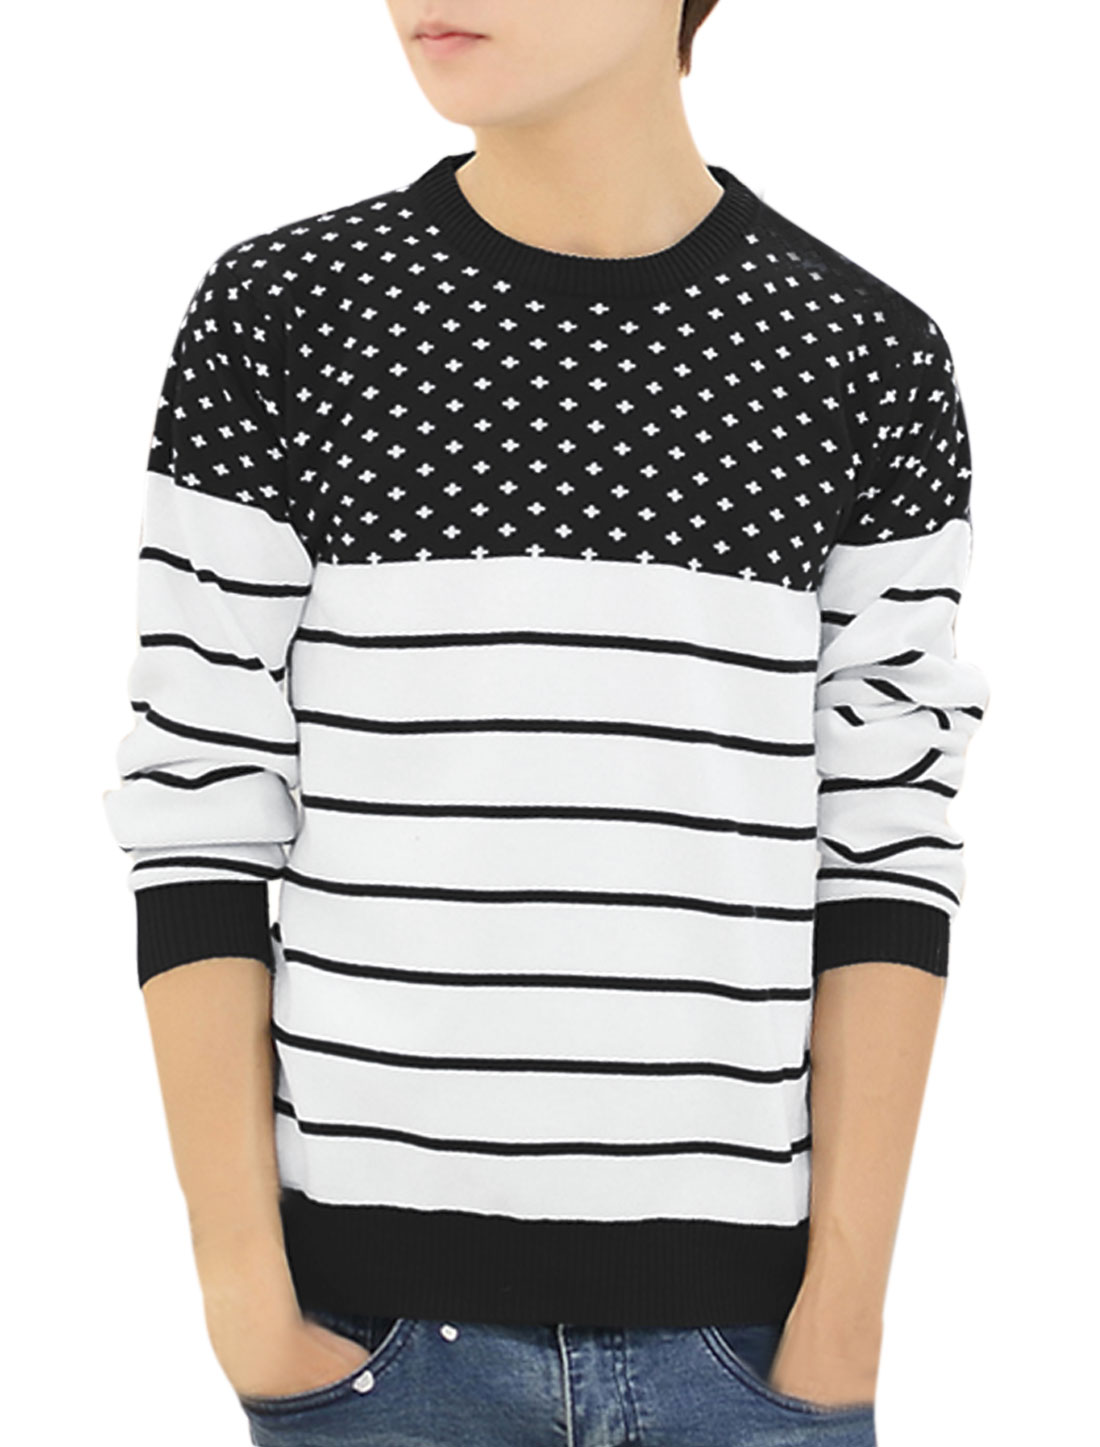 Men Crew Neck Cross Stripes Pattern Ribbed Trim Casual Sweater Black M